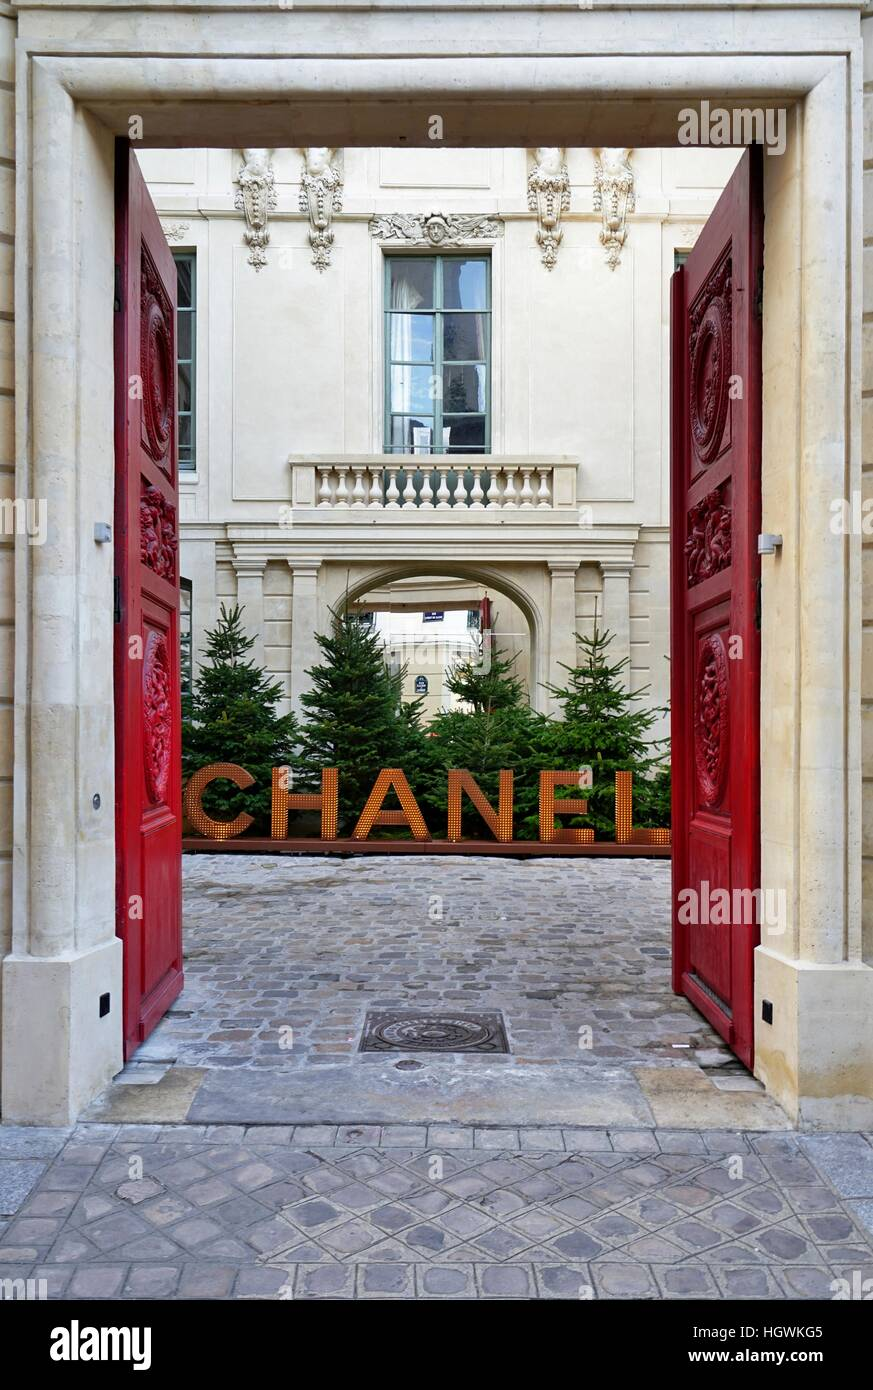 11b1dd684f54 French fashion house Chanel has opened a temporary pop-up store in a  landmark building in the Marais in Paris